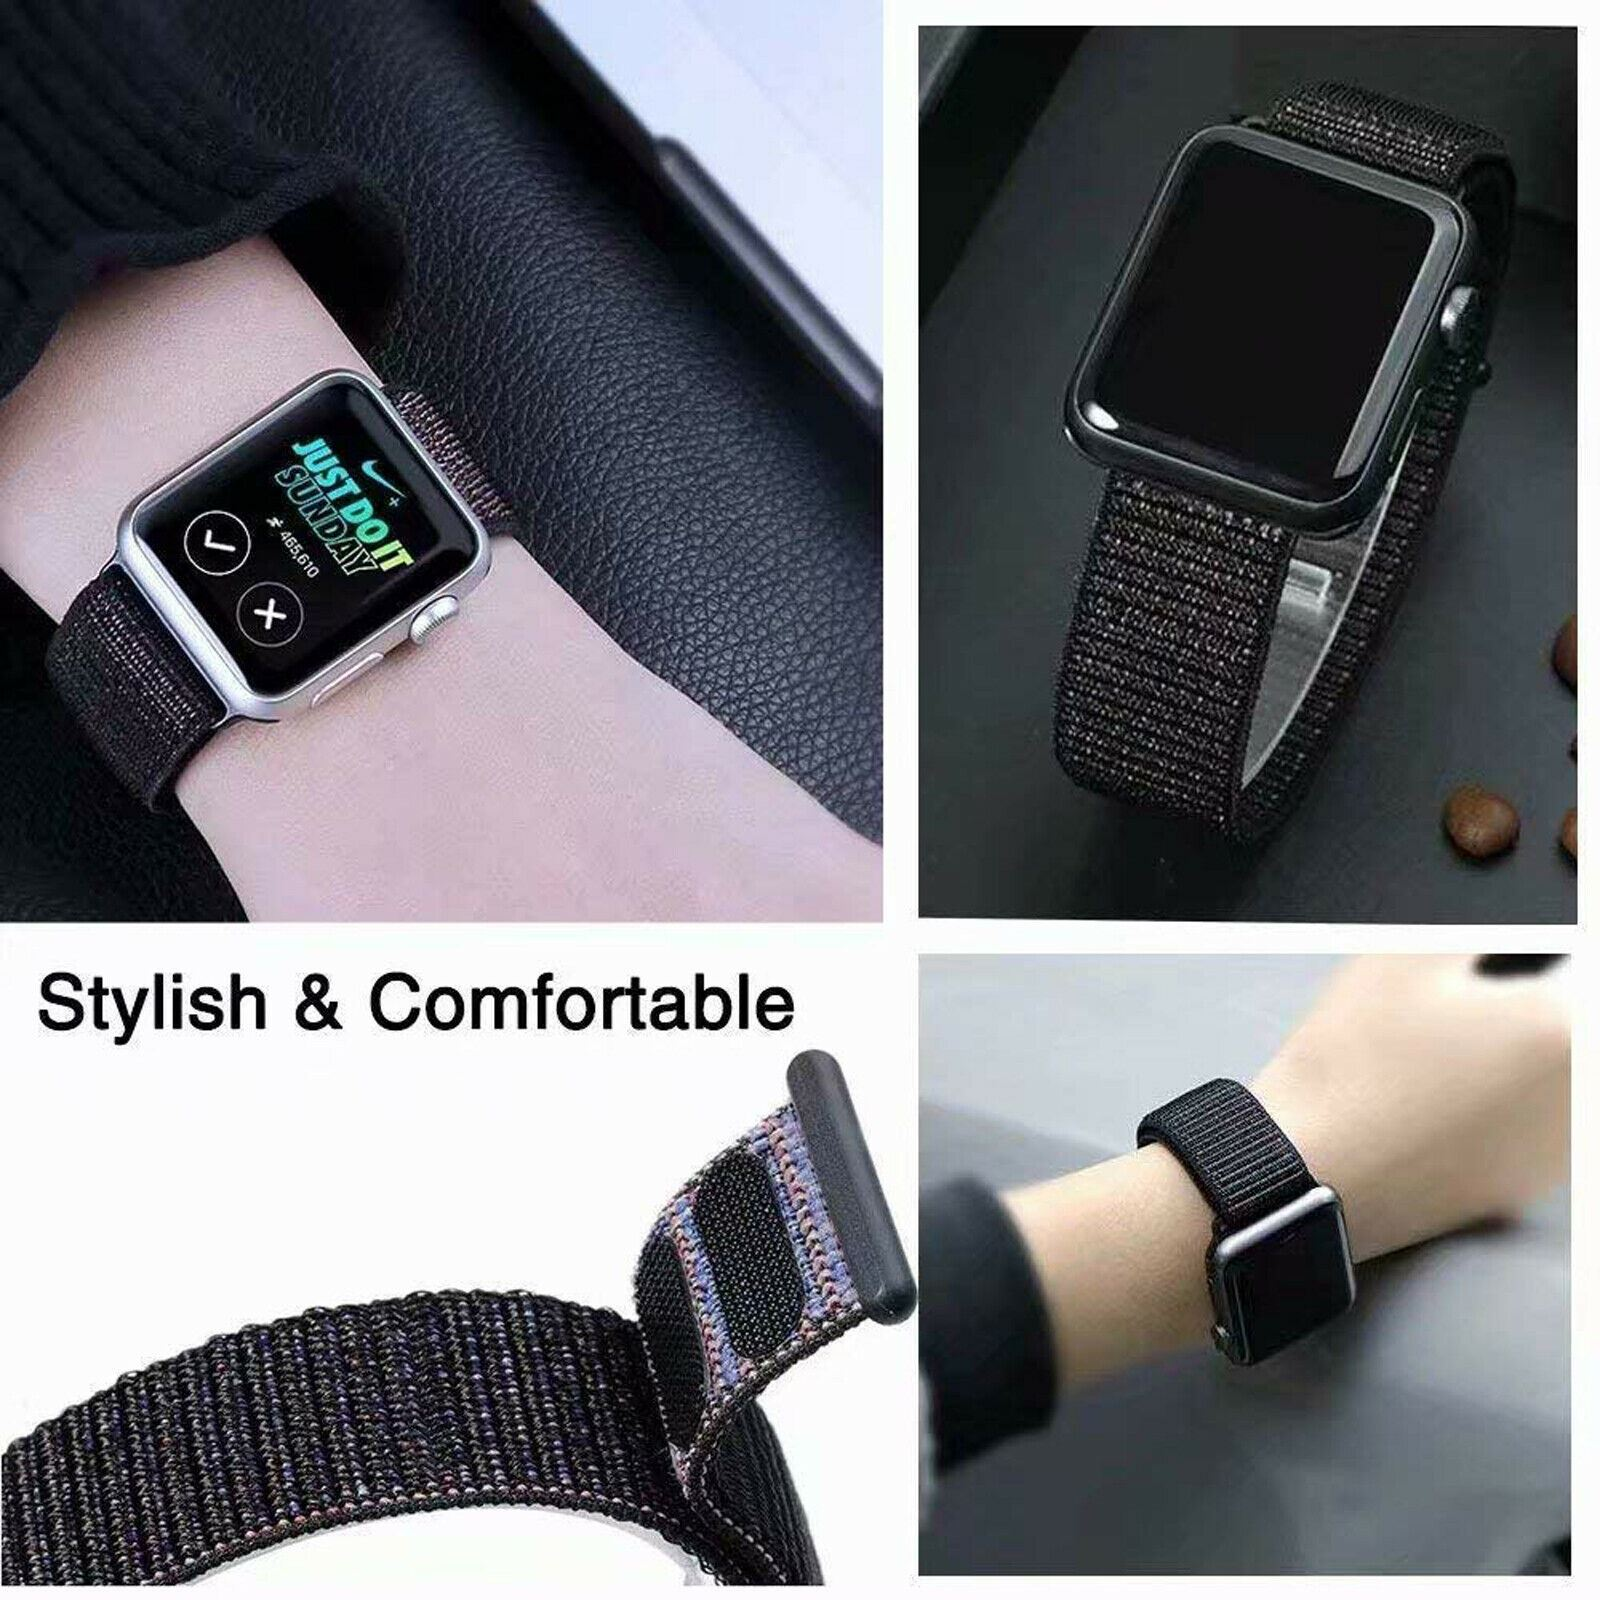 Band-Strap-For-Apple-Watch-Adjustable-Waterproof-Braided-Nylon-Material thumbnail 31